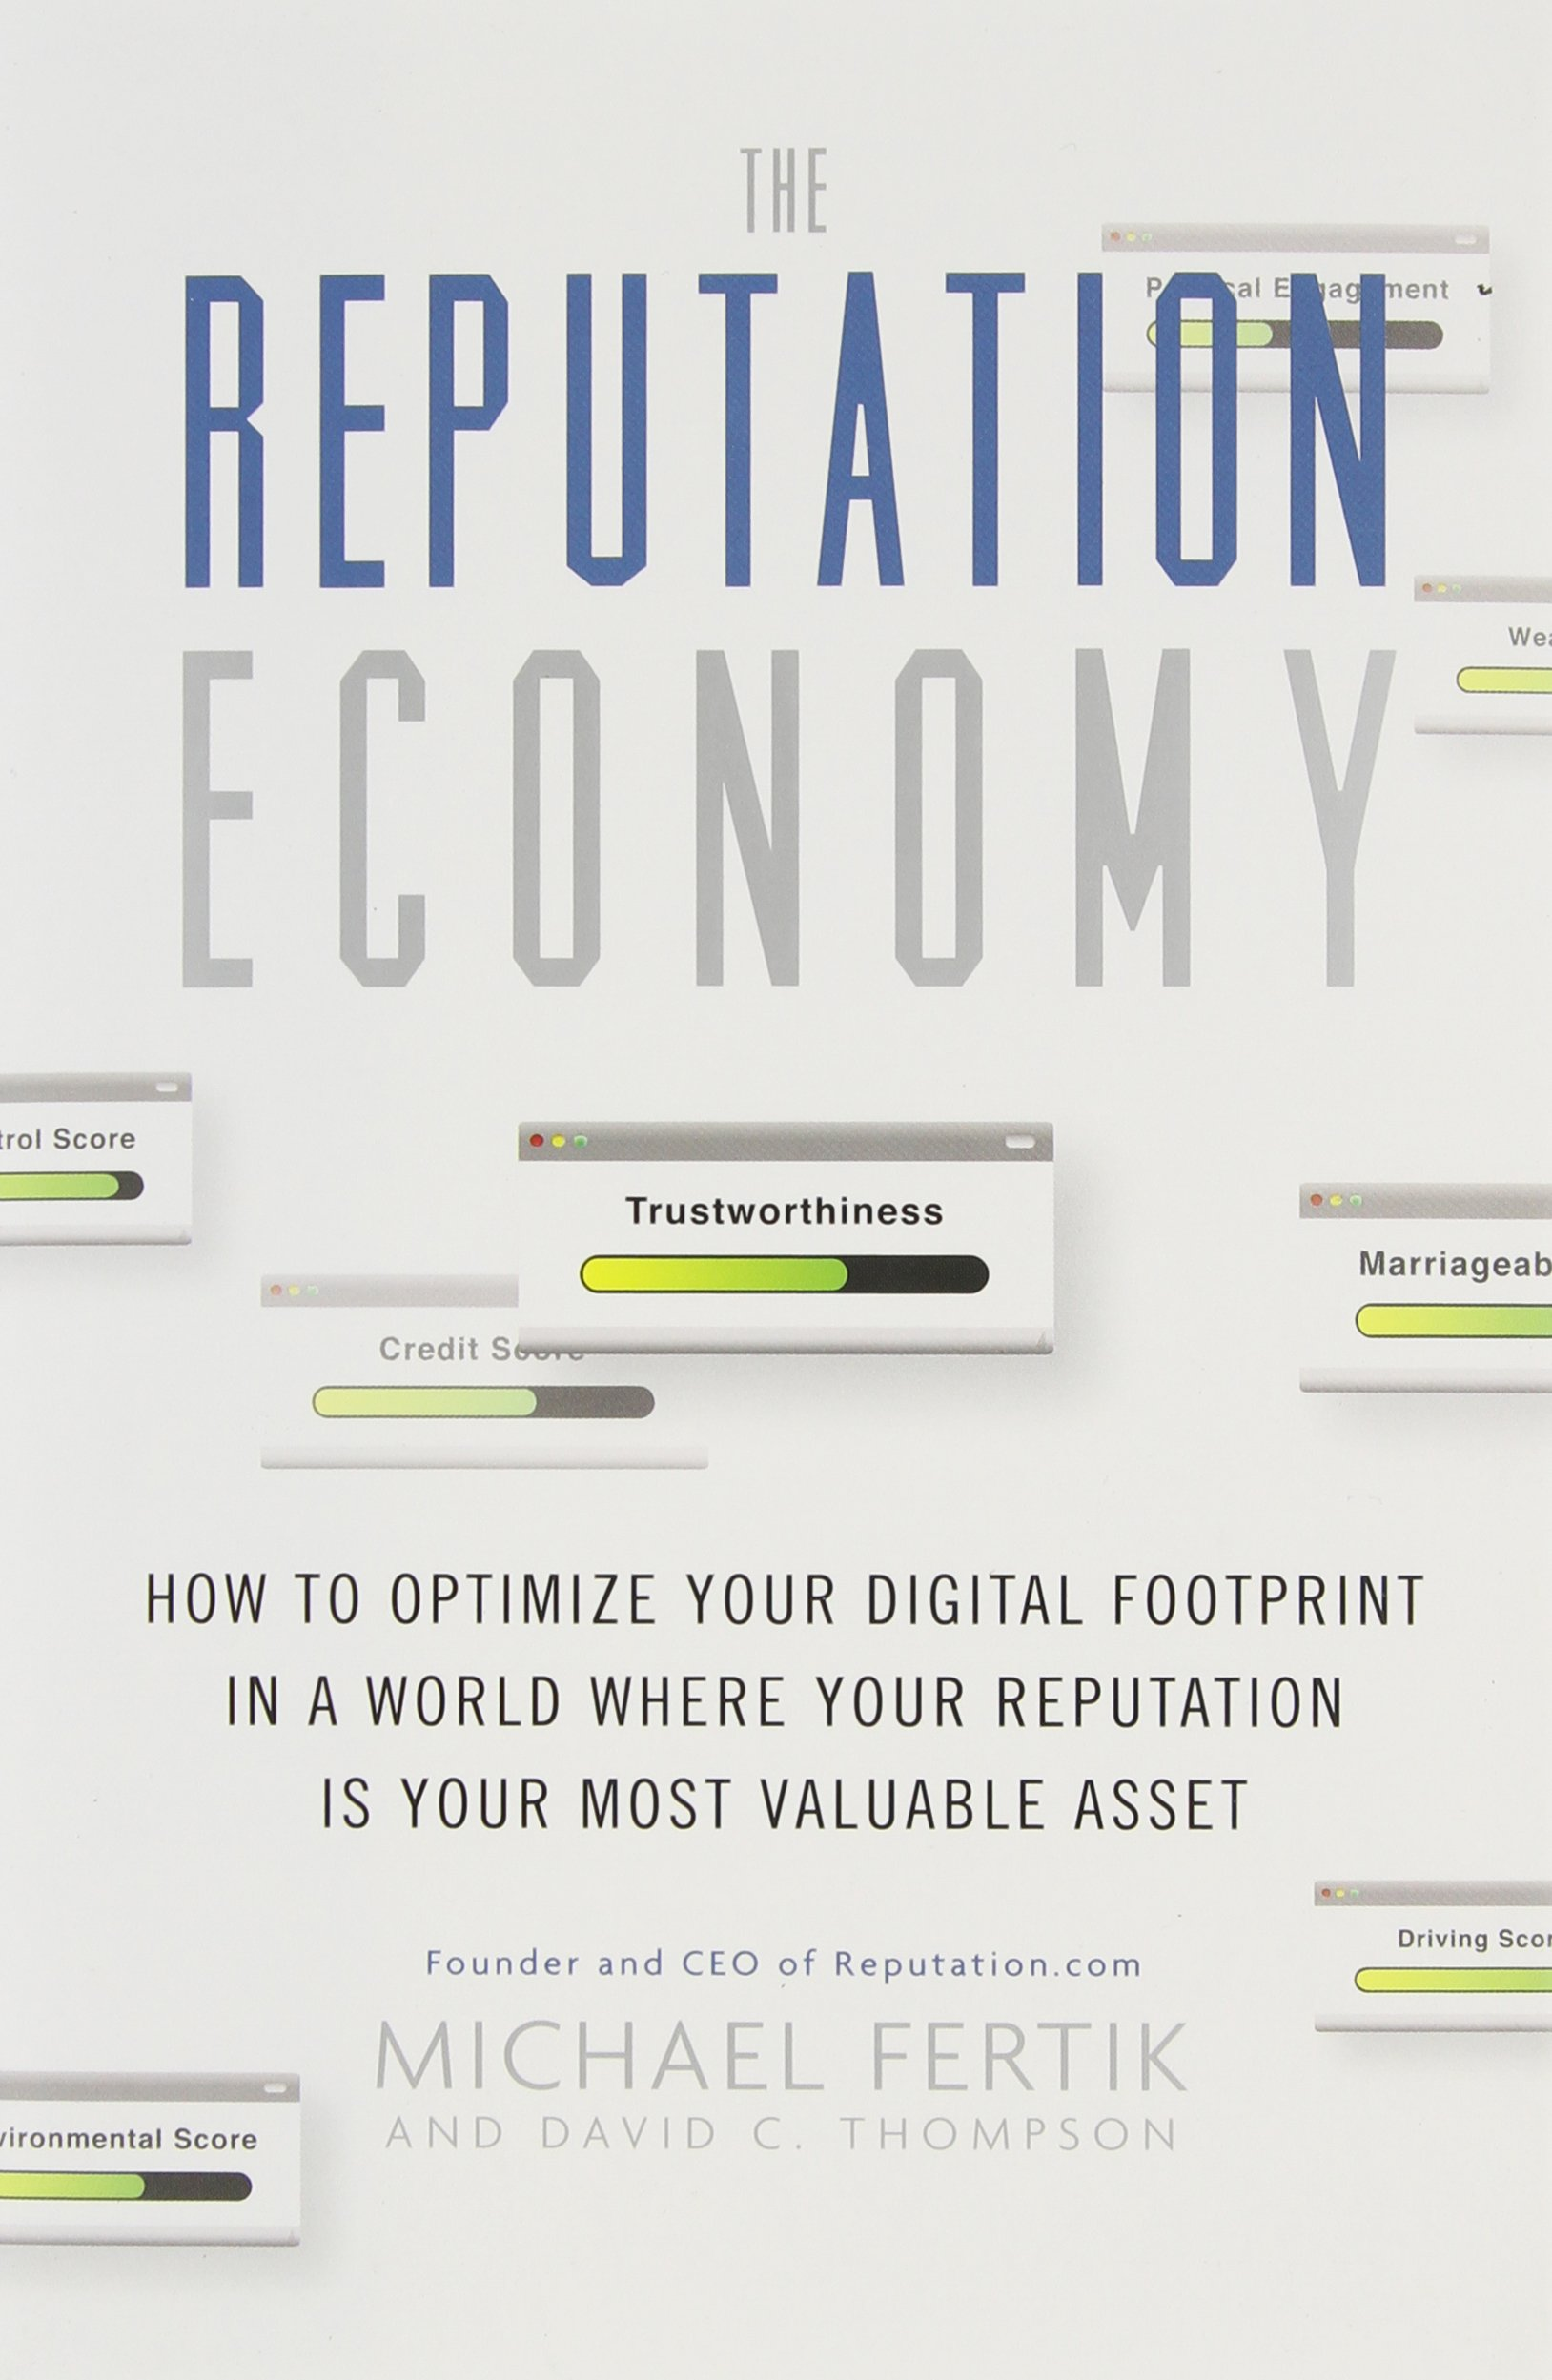 The Reputation Economy is available on Amazon in Kindle, Hardcover, Audible and MP3 CD editions.